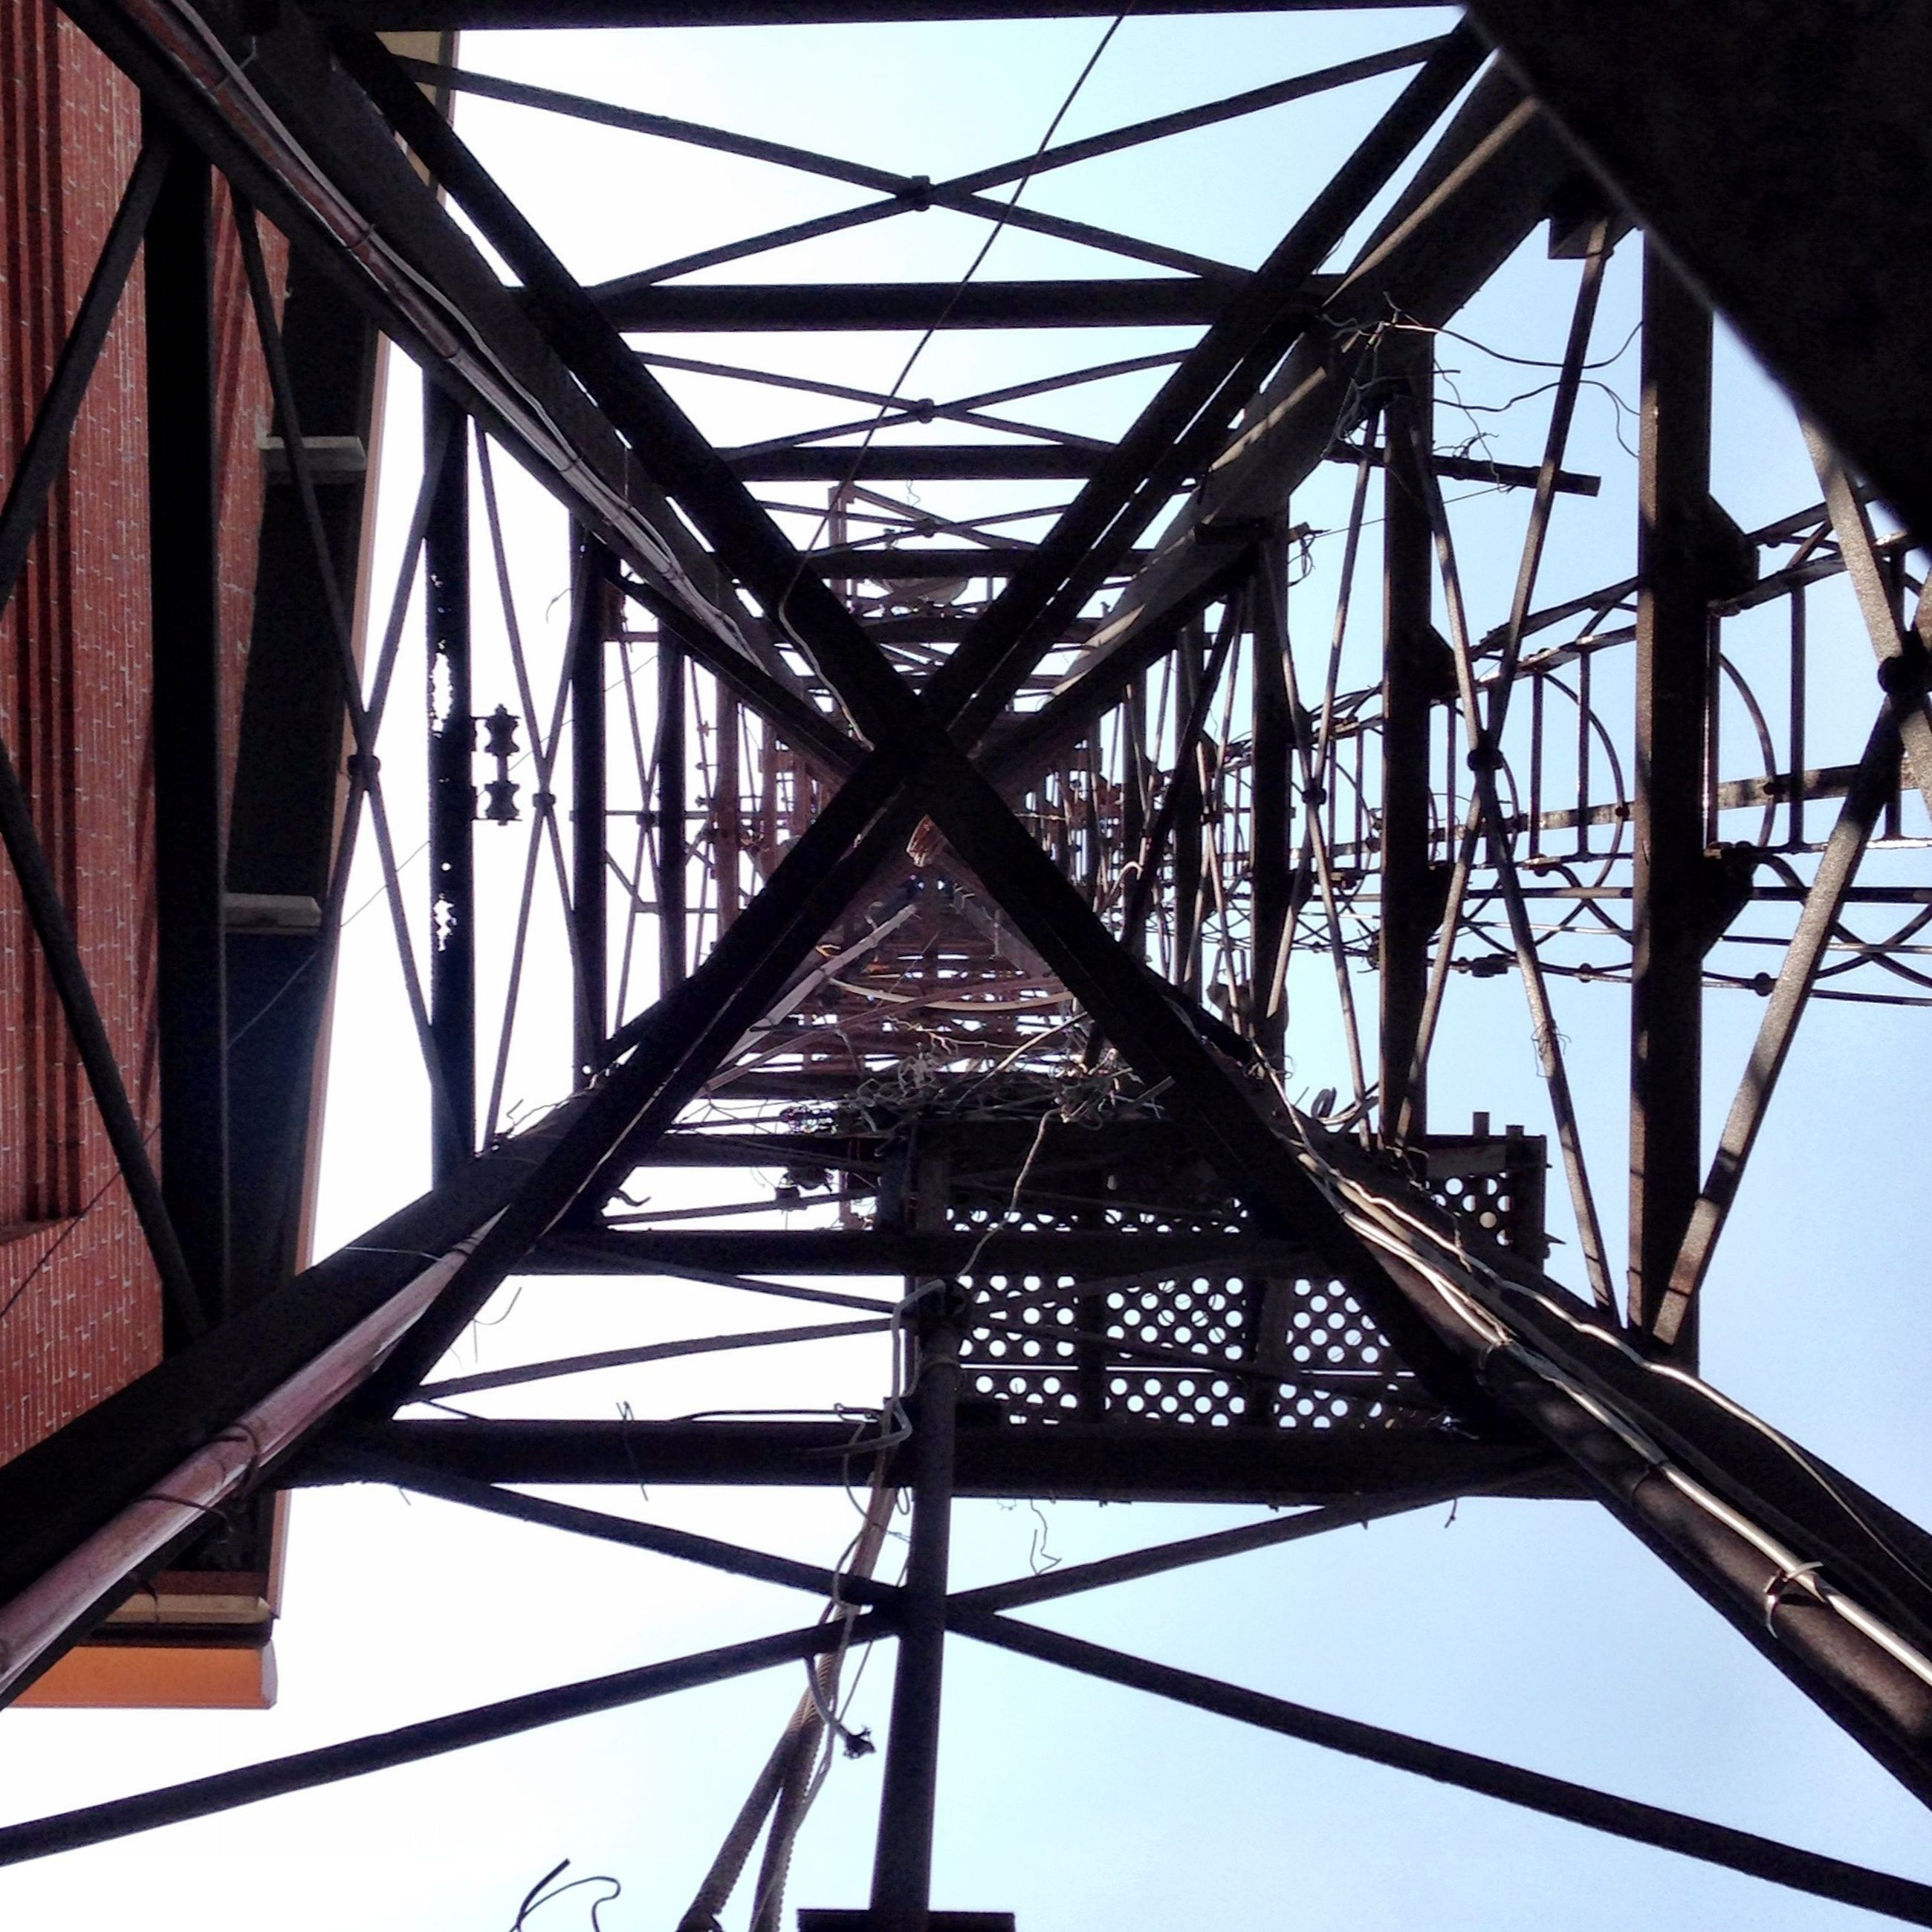 low angle view, connection, built structure, clear sky, electricity pylon, metal, architecture, sky, power line, power supply, directly below, metallic, day, cable, no people, grid, outdoors, electricity, part of, engineering